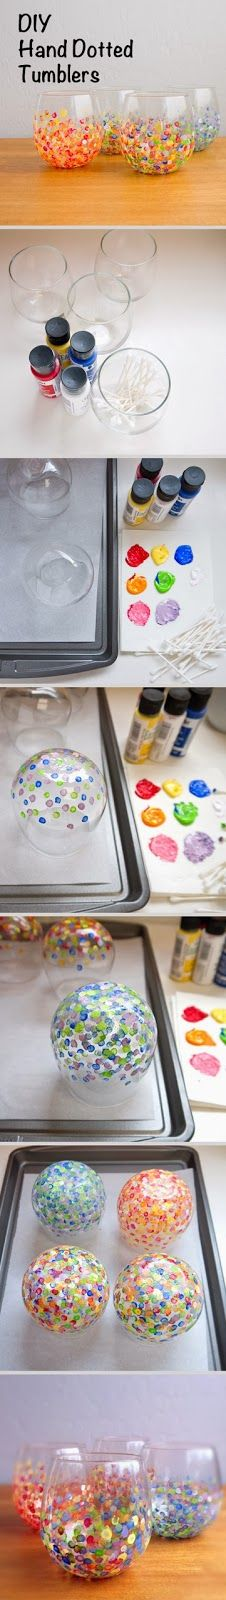 Easy DIY Crafts: Hand dotted tumblers